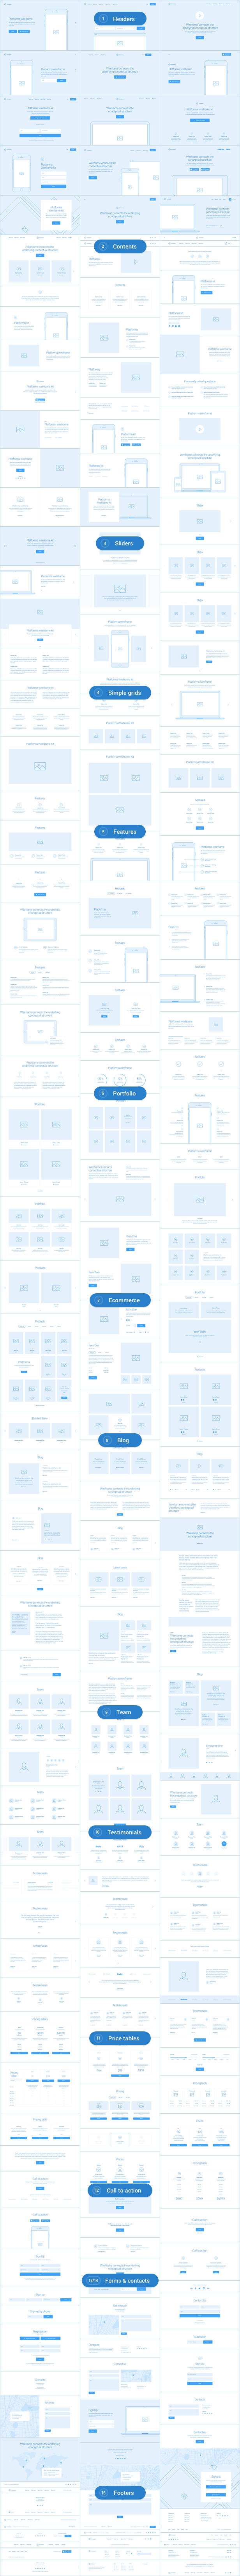 16-2 30+ Best Sketch Templates of 2019 design tips